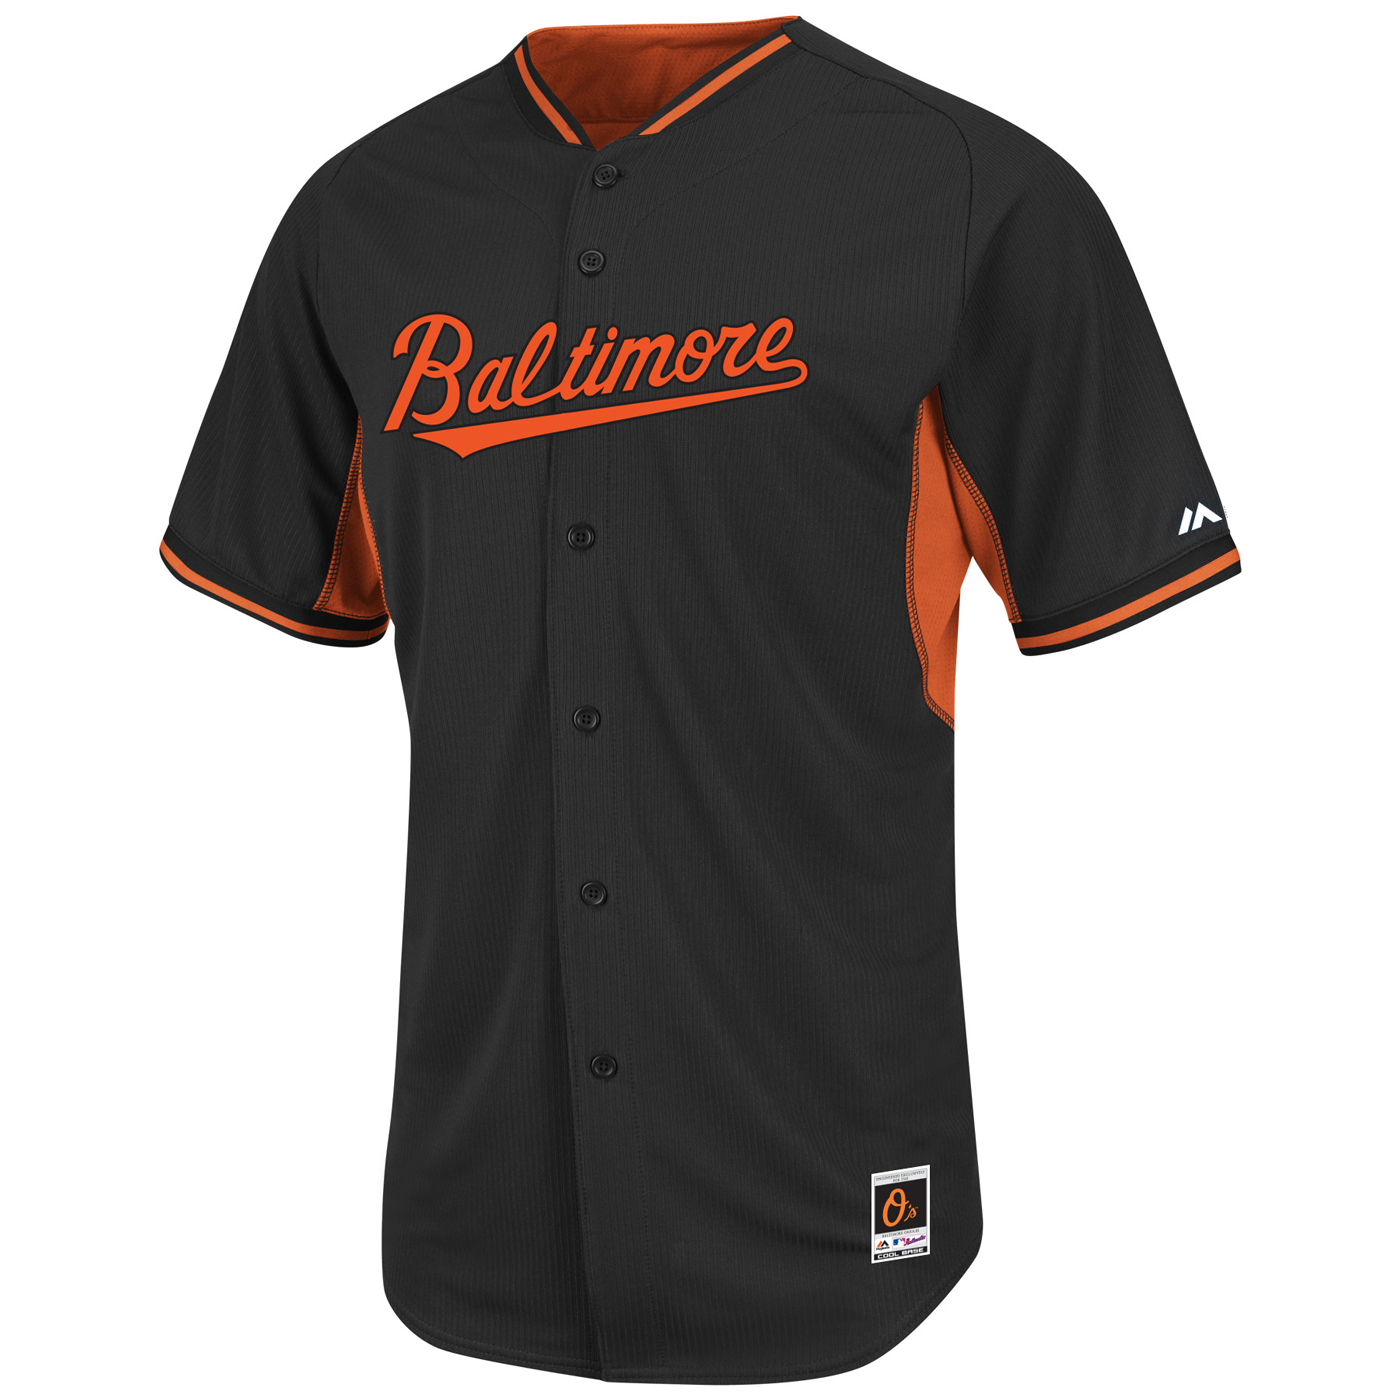 MLB Batting Practice Jerseys - FREE SHIPPING on MLB Jerseys